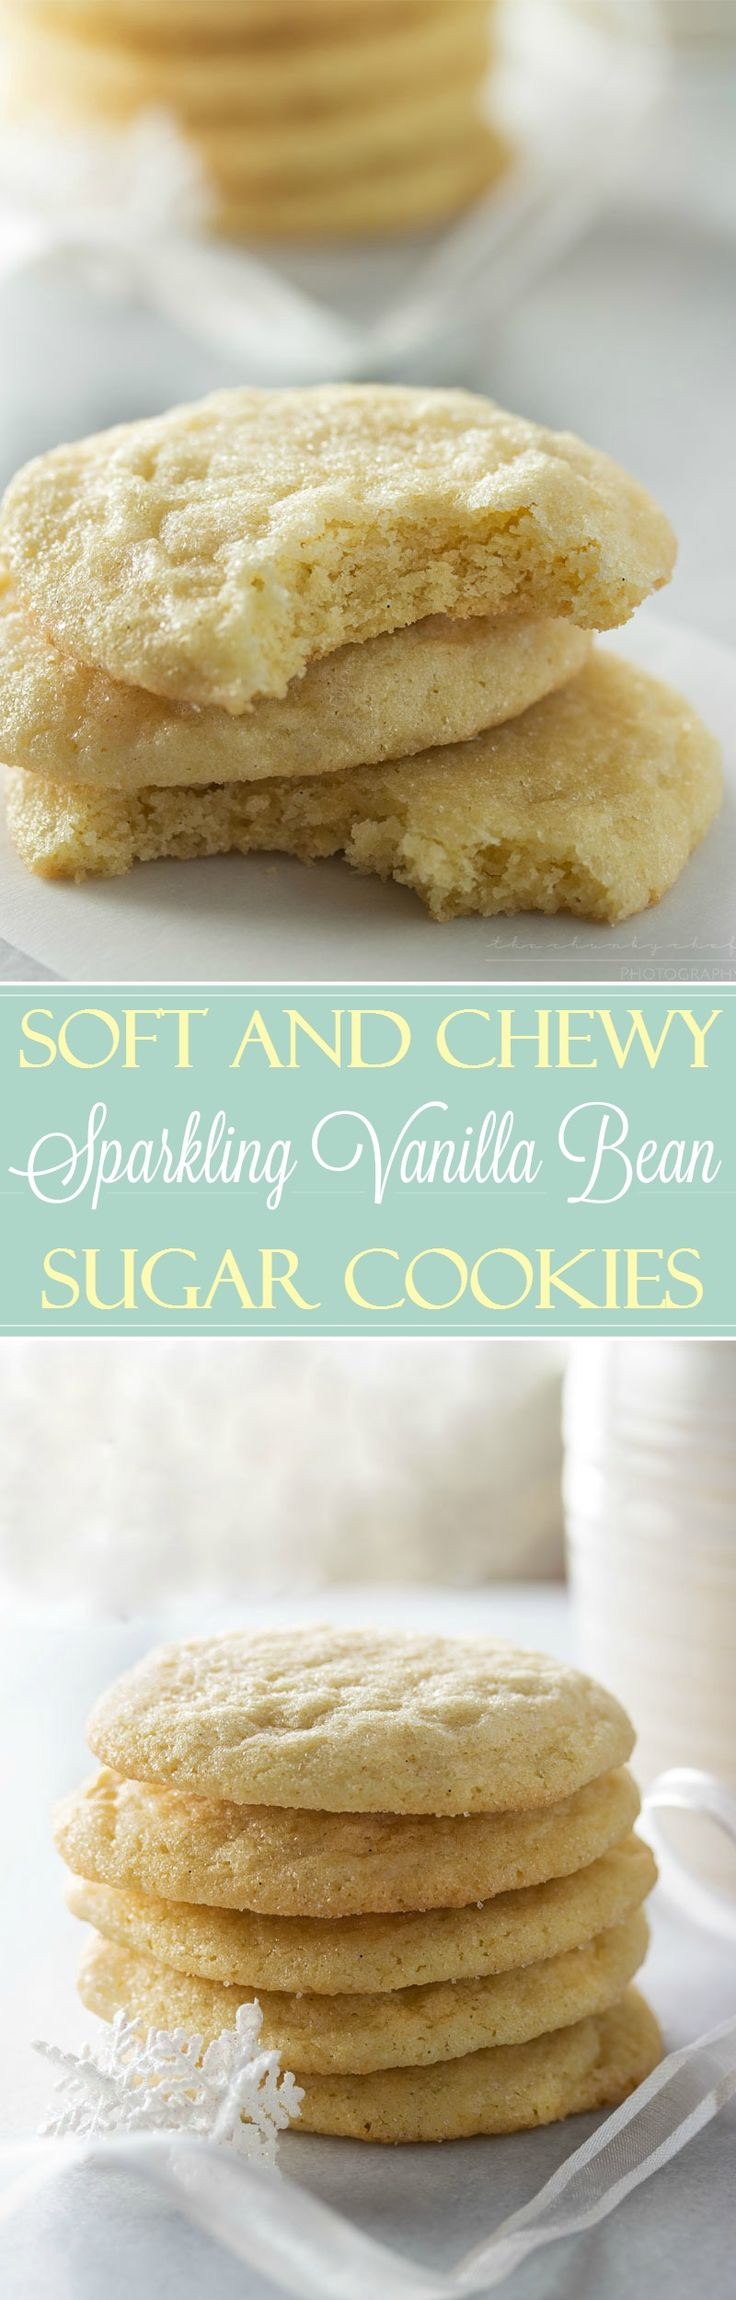 Soft Vanilla Bean Sugar Cookies | These vanilla bean sugar cookies are rolled in sugar for a sparkling appearance and a soft, light and chewy texture that will make these your new favorite!  #ABCookieSwap